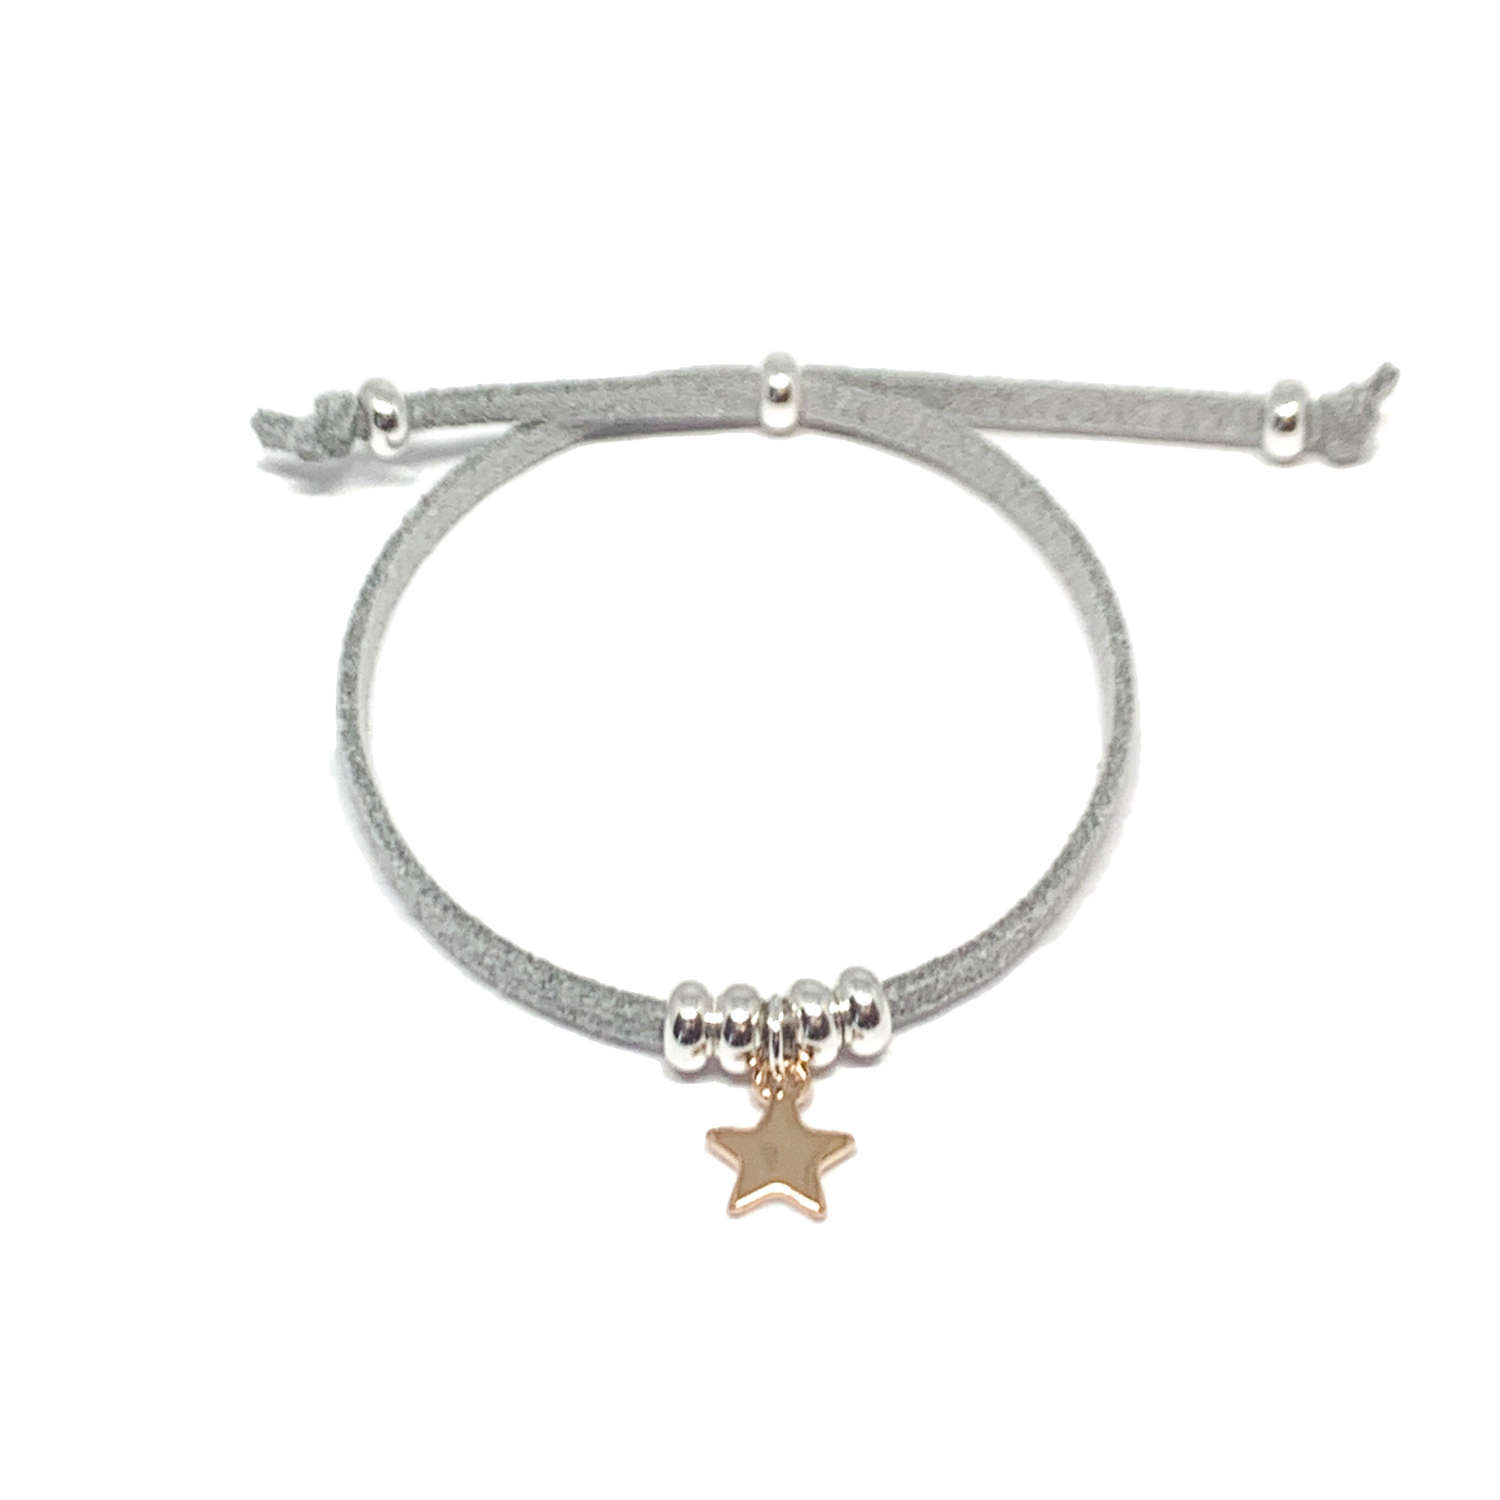 Helena Star Light Grey Bracelet - Rose Gold